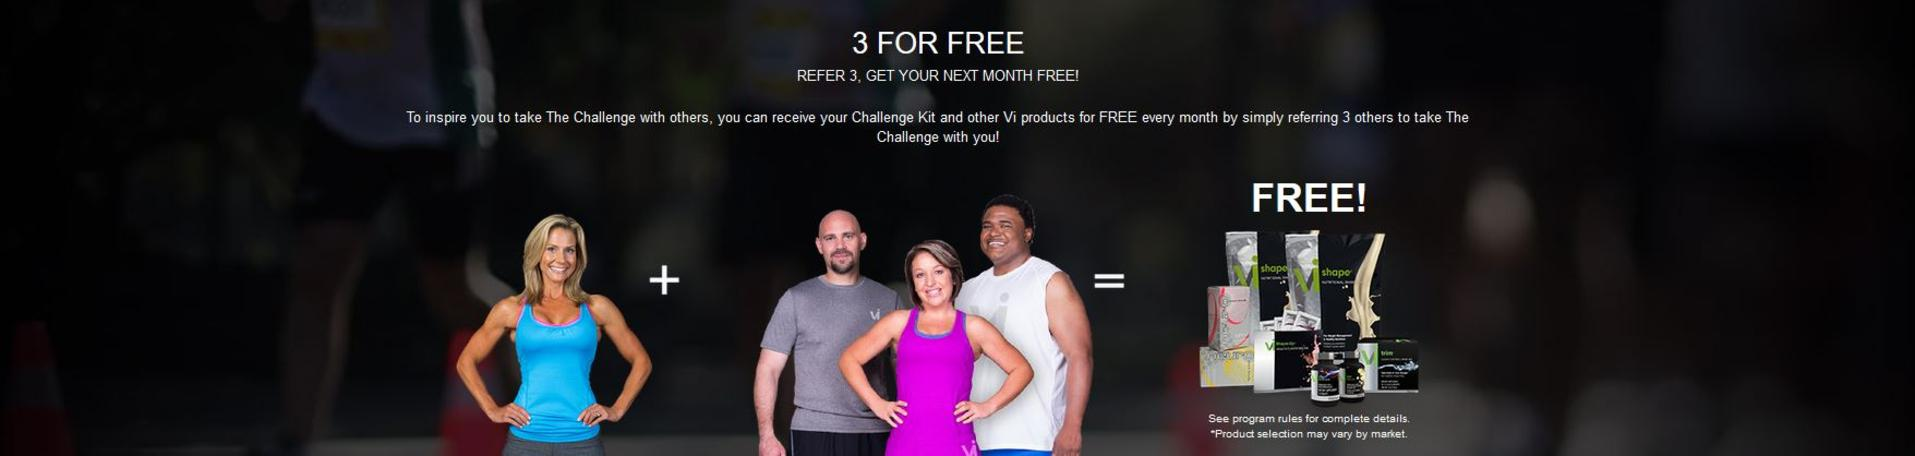 Get Free Protein Powder, Supplements, And Energy Drinks With The Vi 3 For FREE Incentive Program More Details Located Here http://www.FreeProteinPowder.com